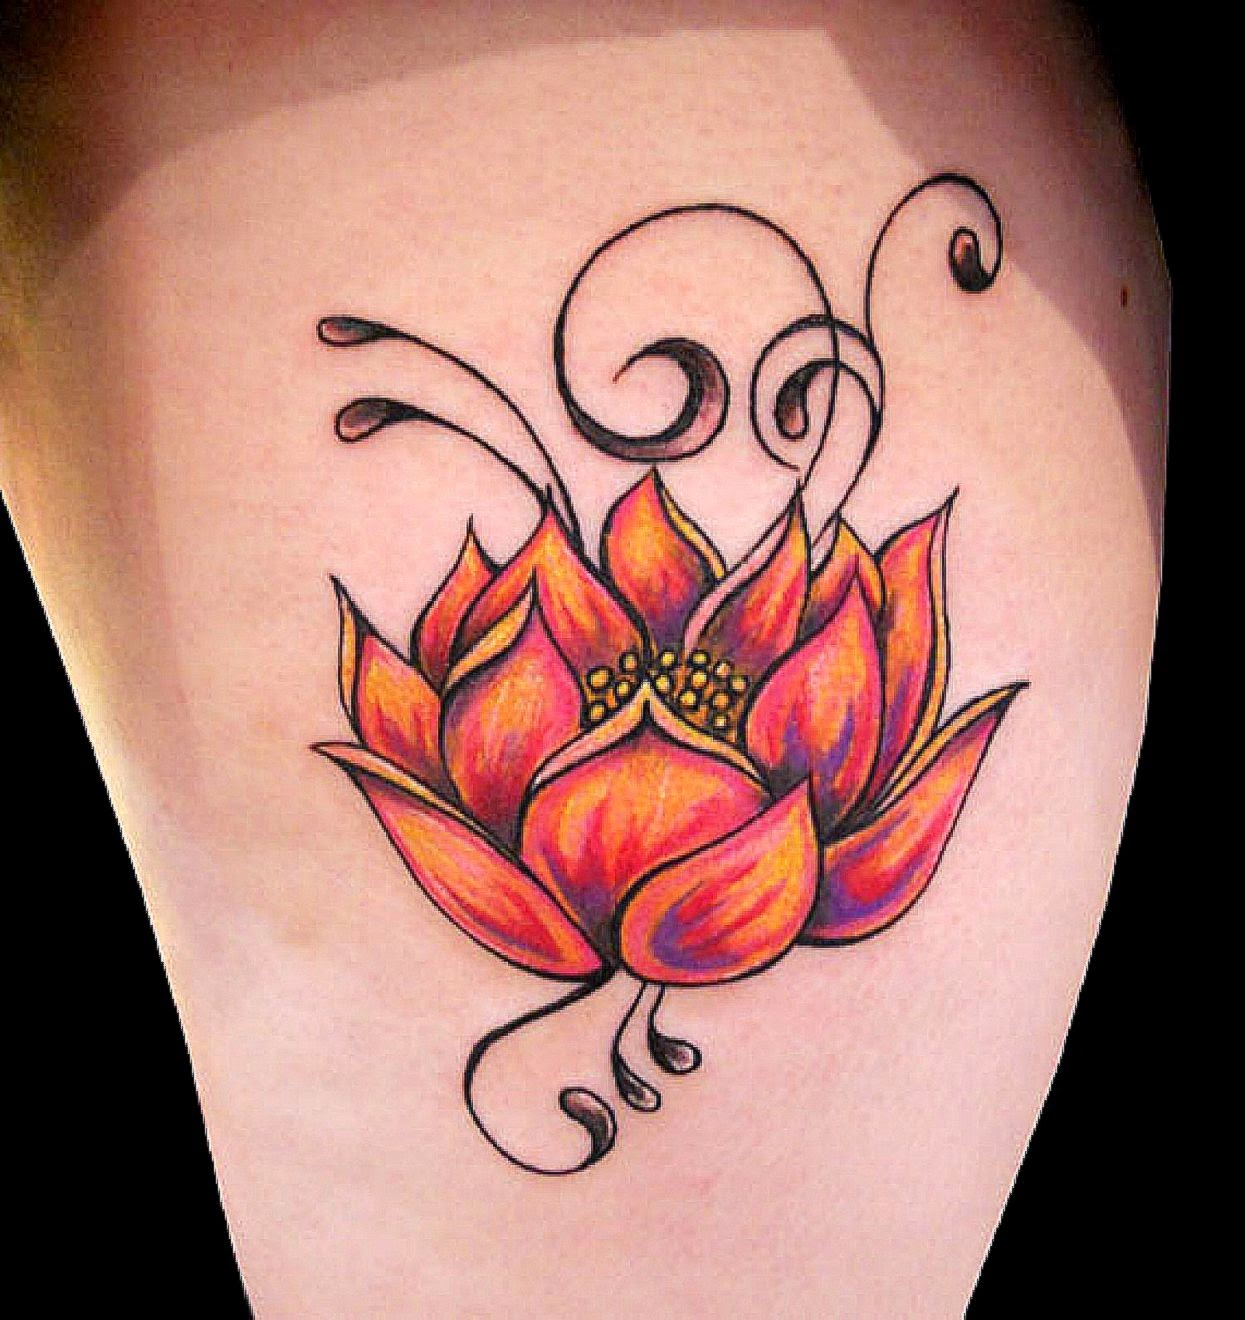 Lotus flower tattoo free tattoo pictures 45 awesome lotus flower tattoo designs izmirmasajfo